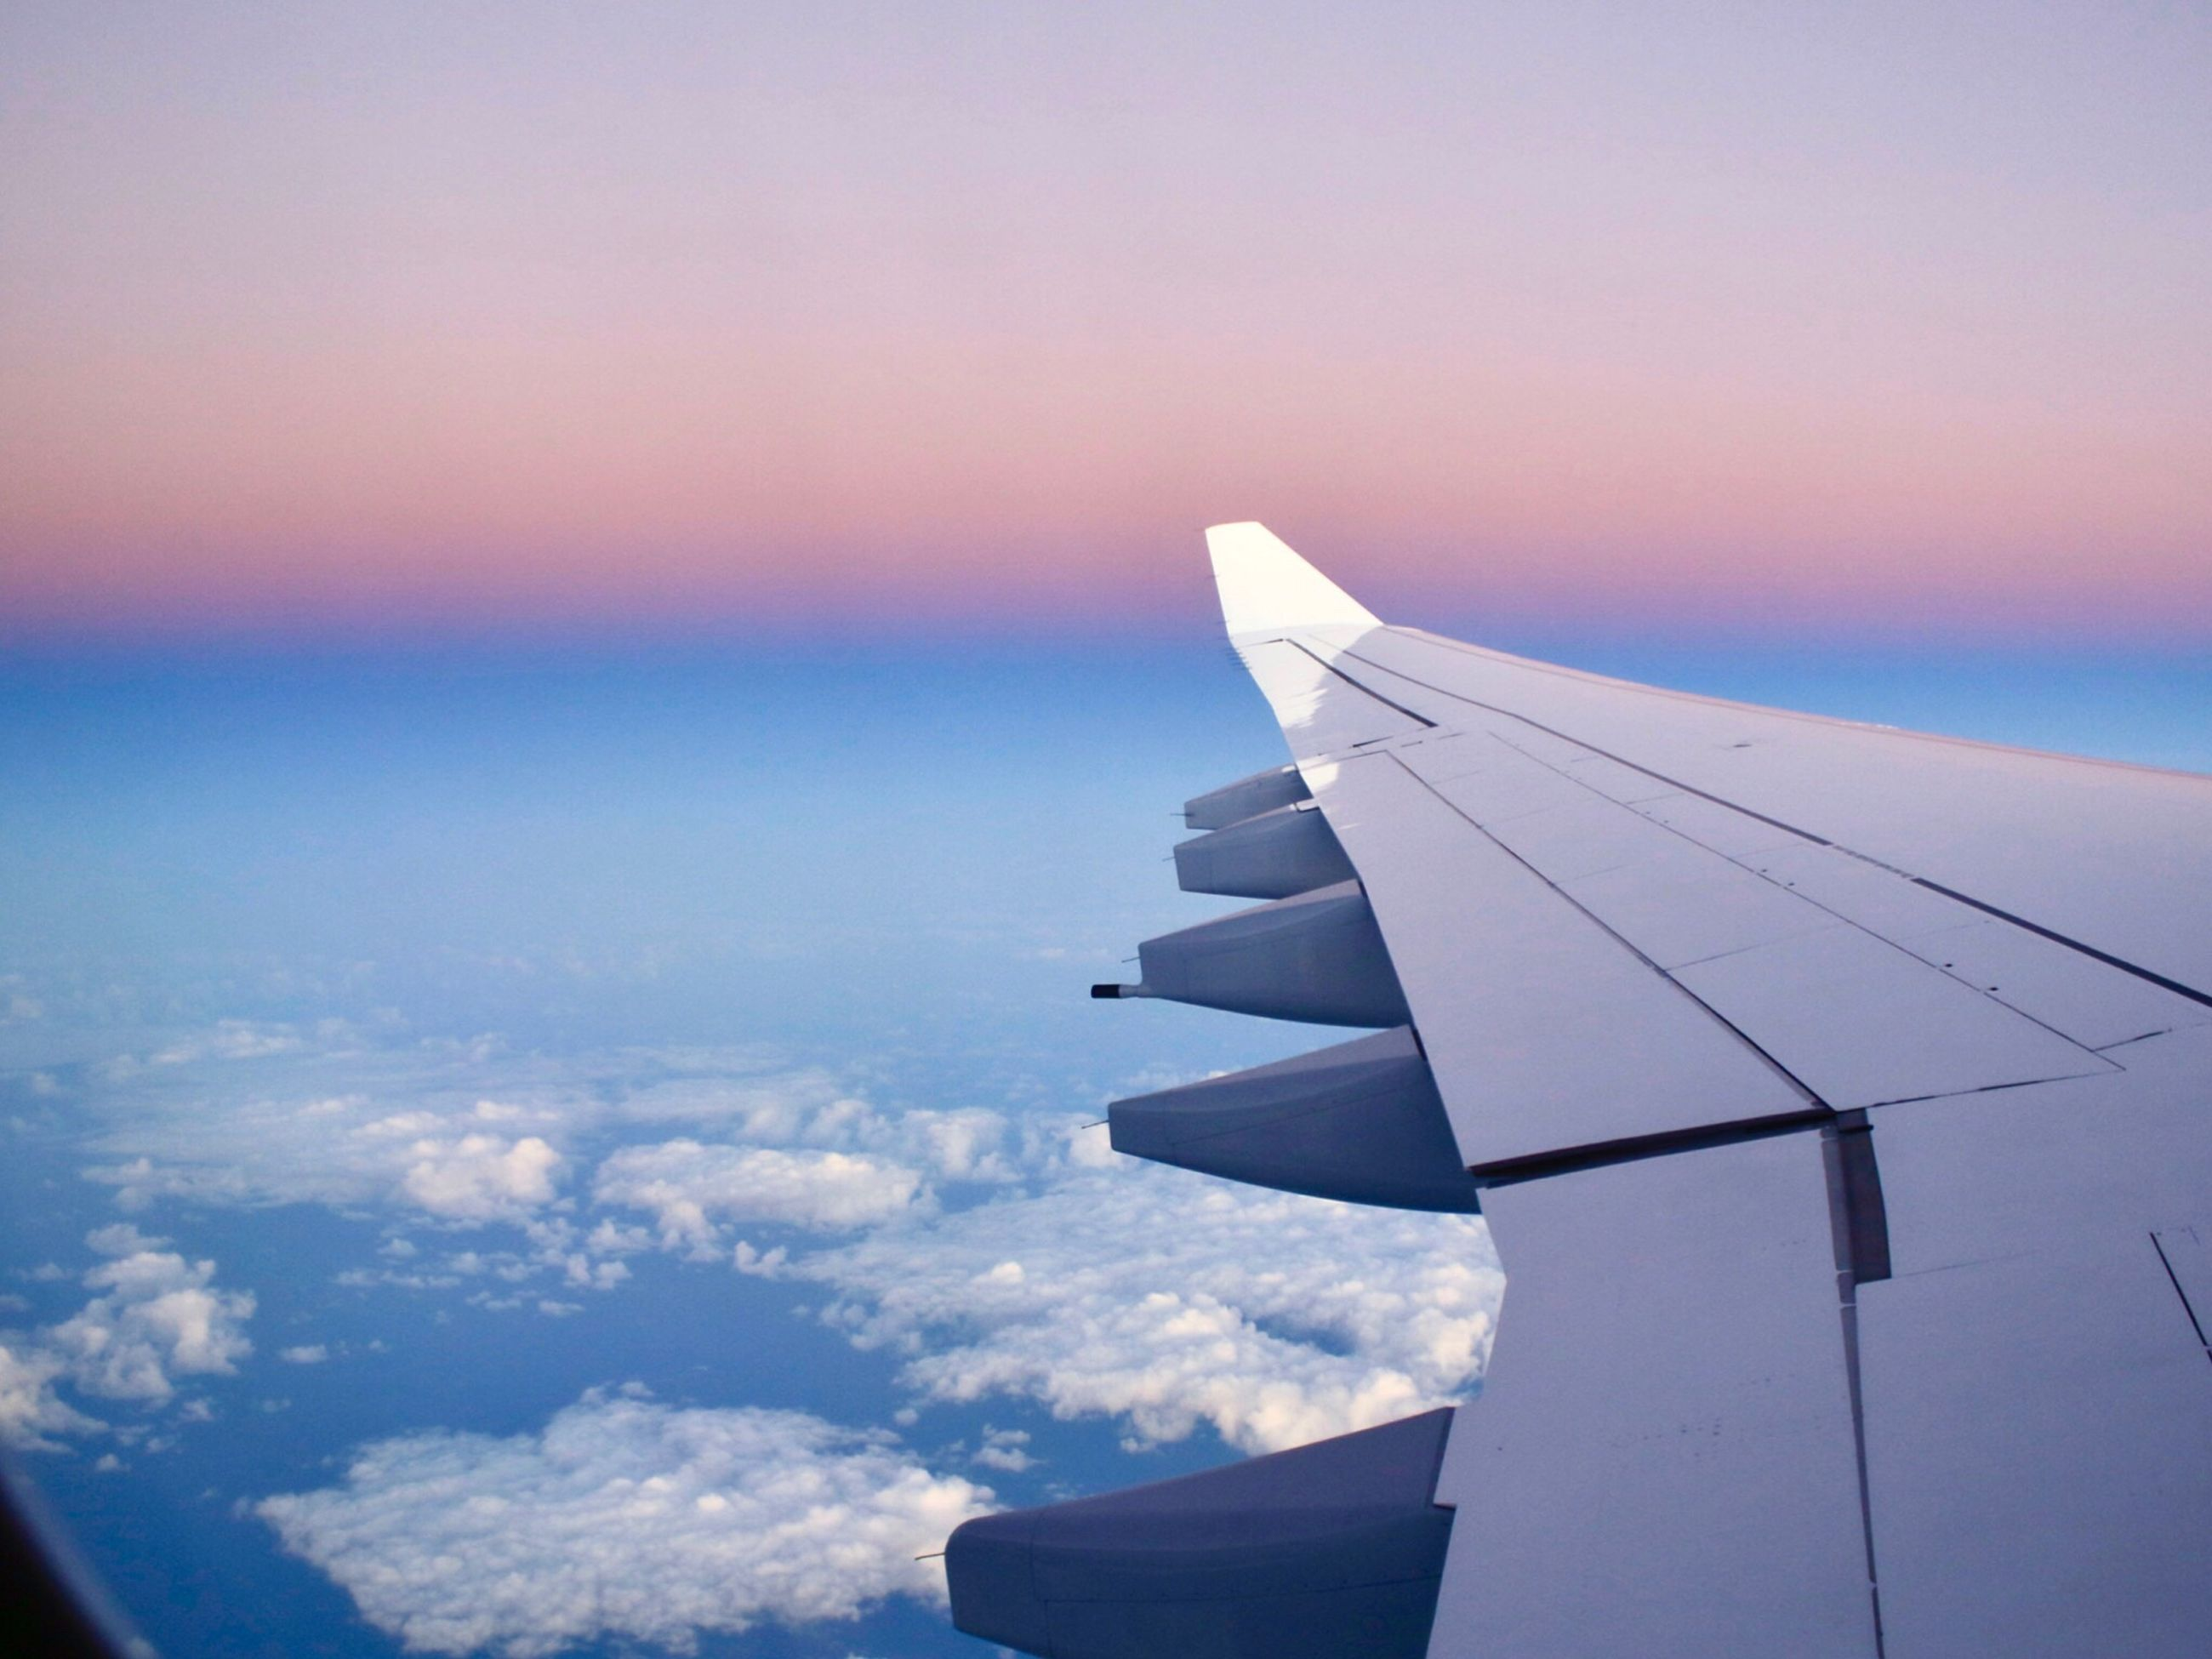 airplane, aircraft wing, flying, aerial view, sky, cloud - sky, travel, nature, journey, transportation, cloudscape, commercial airplane, outdoors, air vehicle, beauty in nature, sunset, no people, scenics, plane, day, cityscape, airplane wing